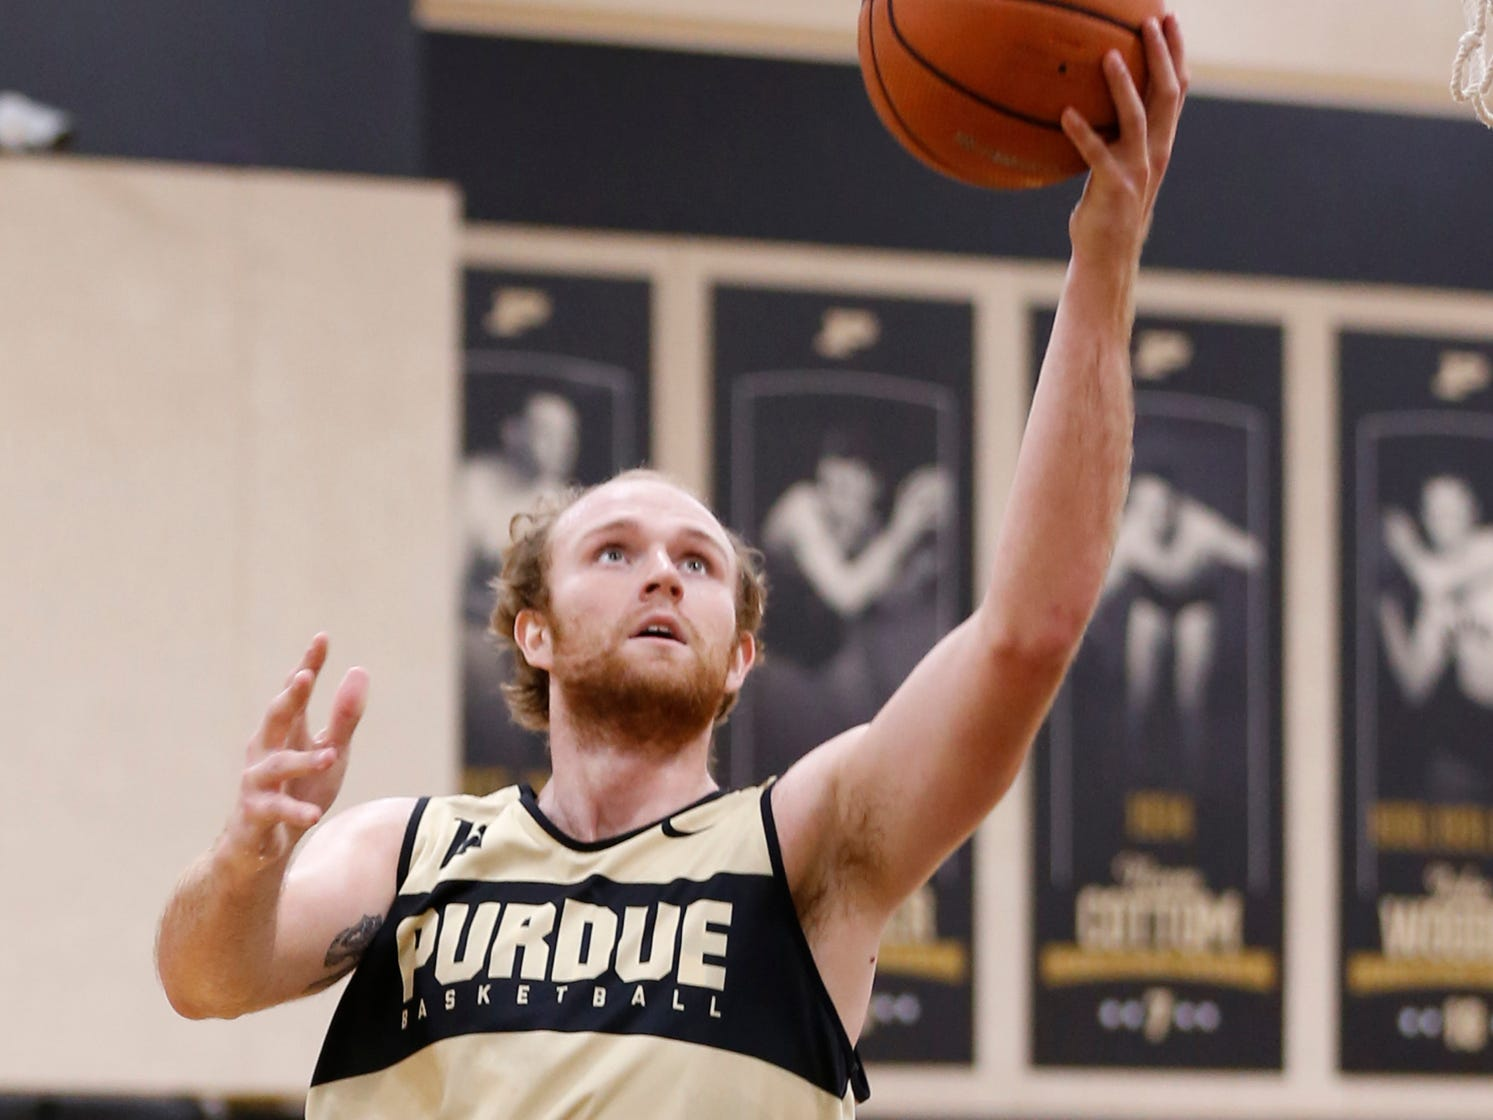 Evan Boudreaux with a layup during the first official practice of the season for Purdue men's basketball Tuesday, September 25, 2018, at Cardinal Court in Mackey Arena.